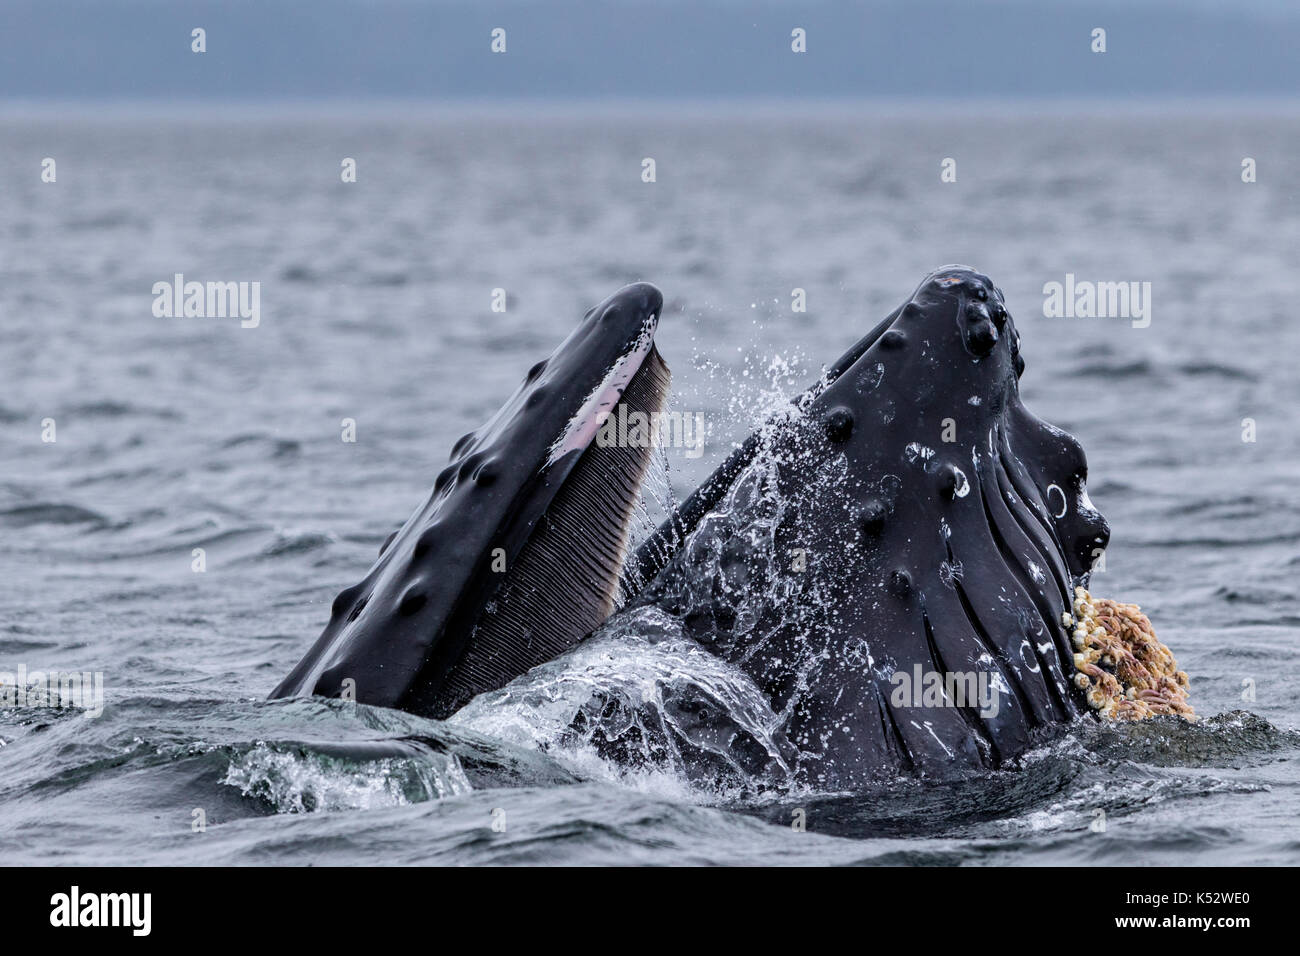 Humoback whale lunge feeding with mouth wide open in Broughton Archipelago Provincial Marine Park off Vancouver Island, British Columbia, Canada. - Stock Image